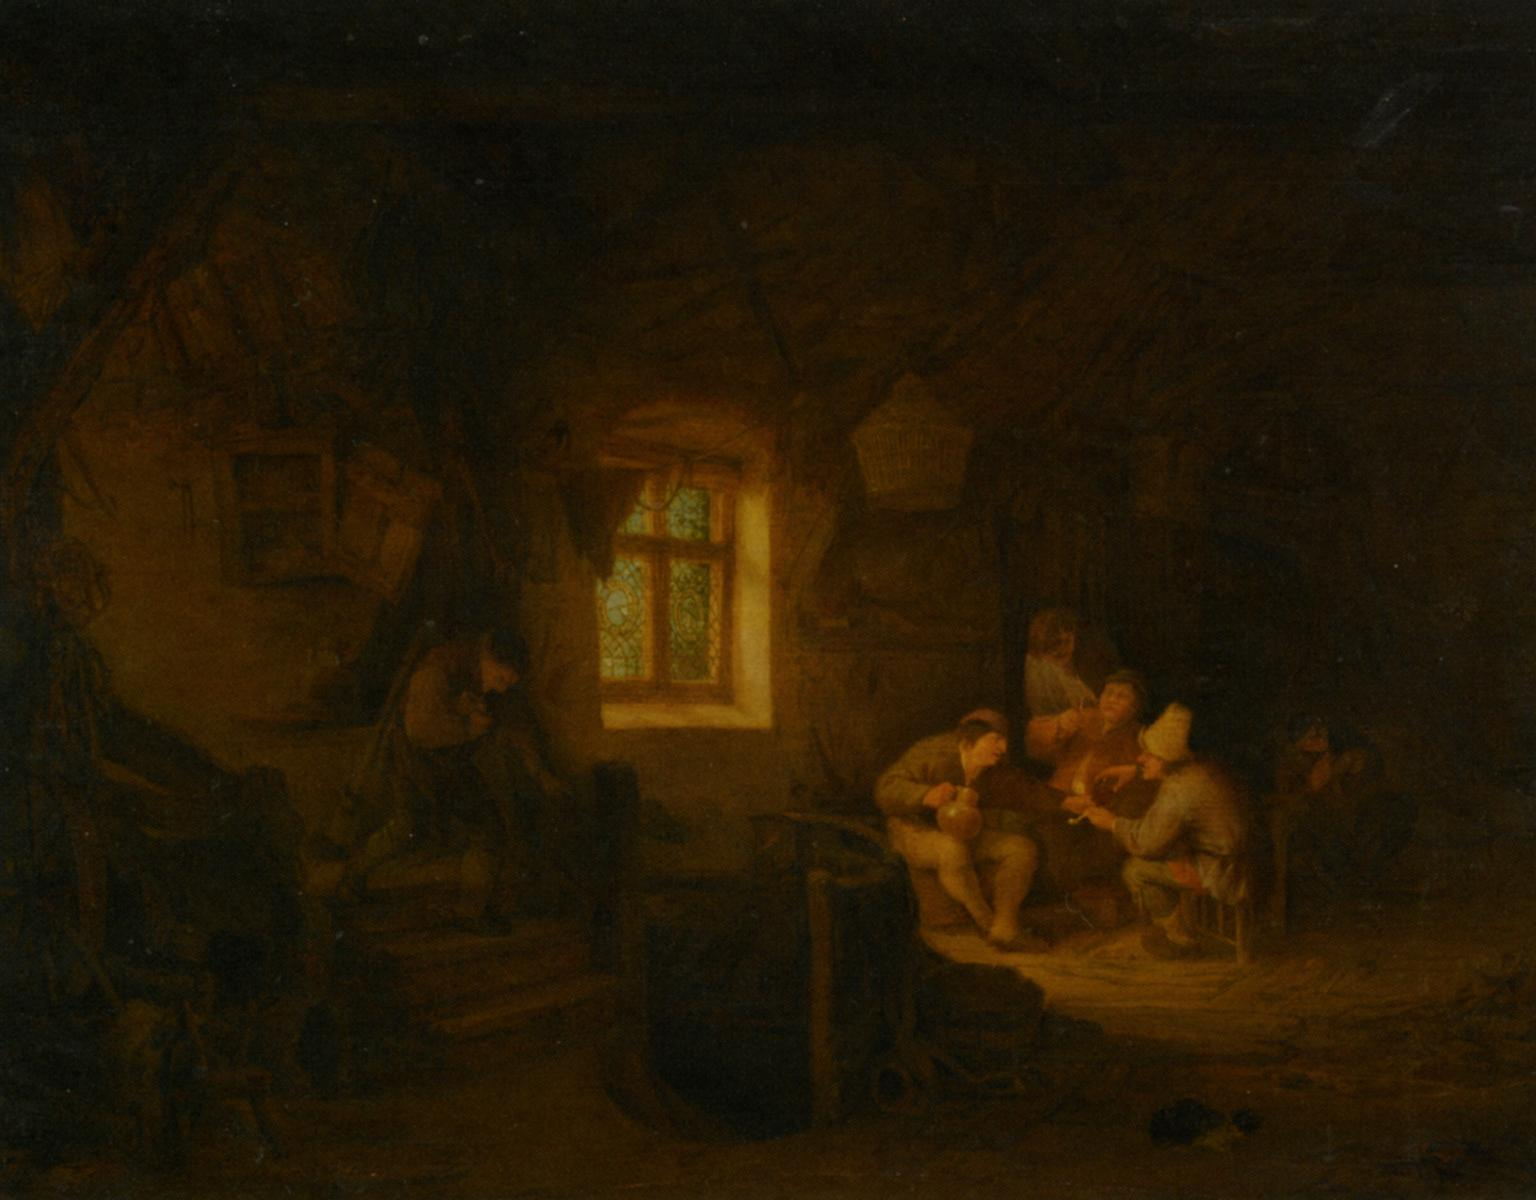 a-tavern-interior-with-peasants-drinking-beneath-a-window.jpg!HD.jpg